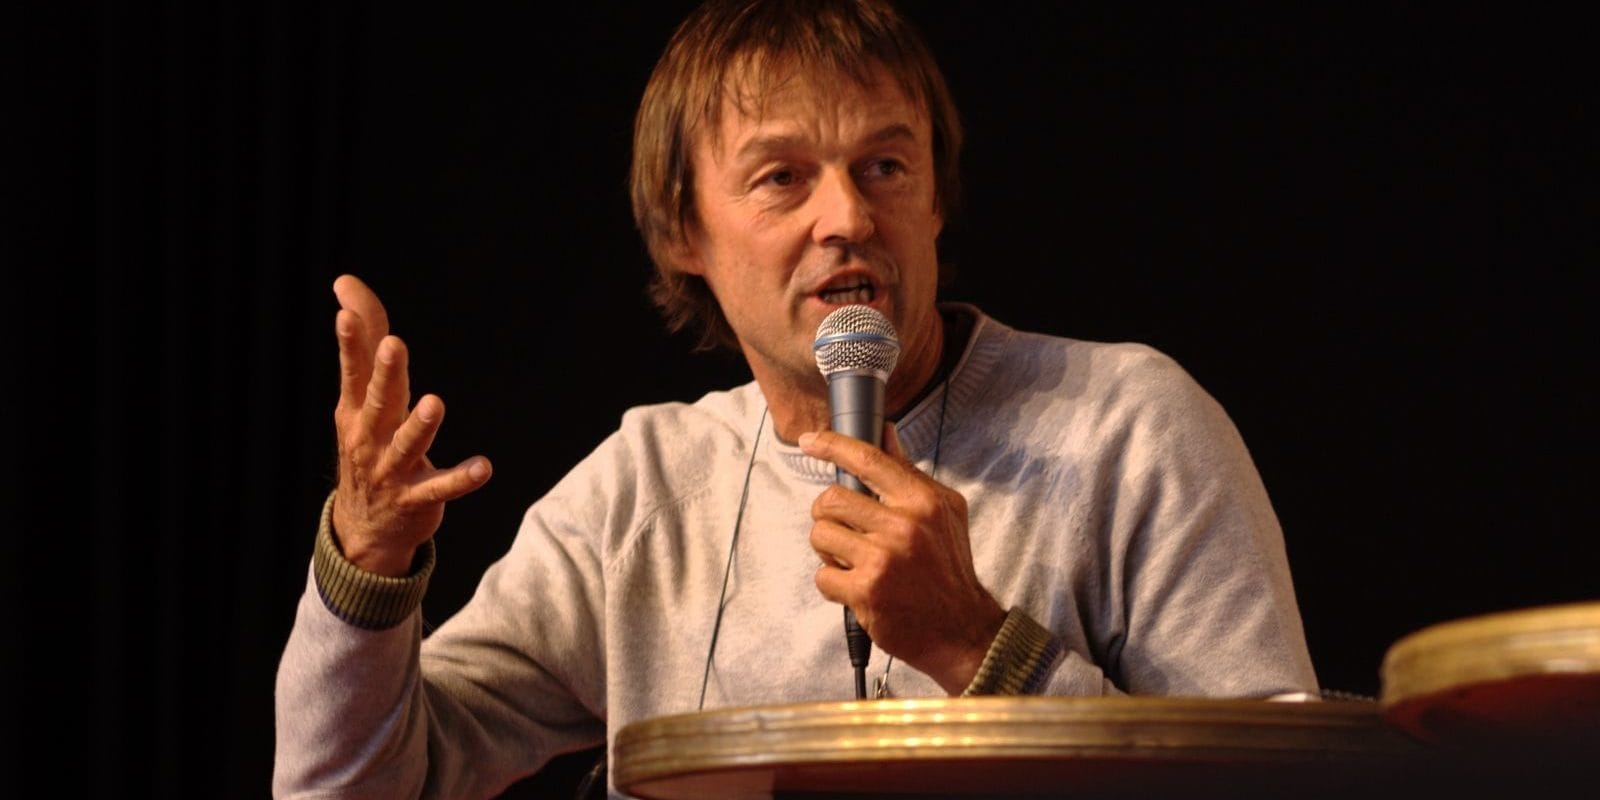 Nicolas Hulot s'explique sur la validation du GCO